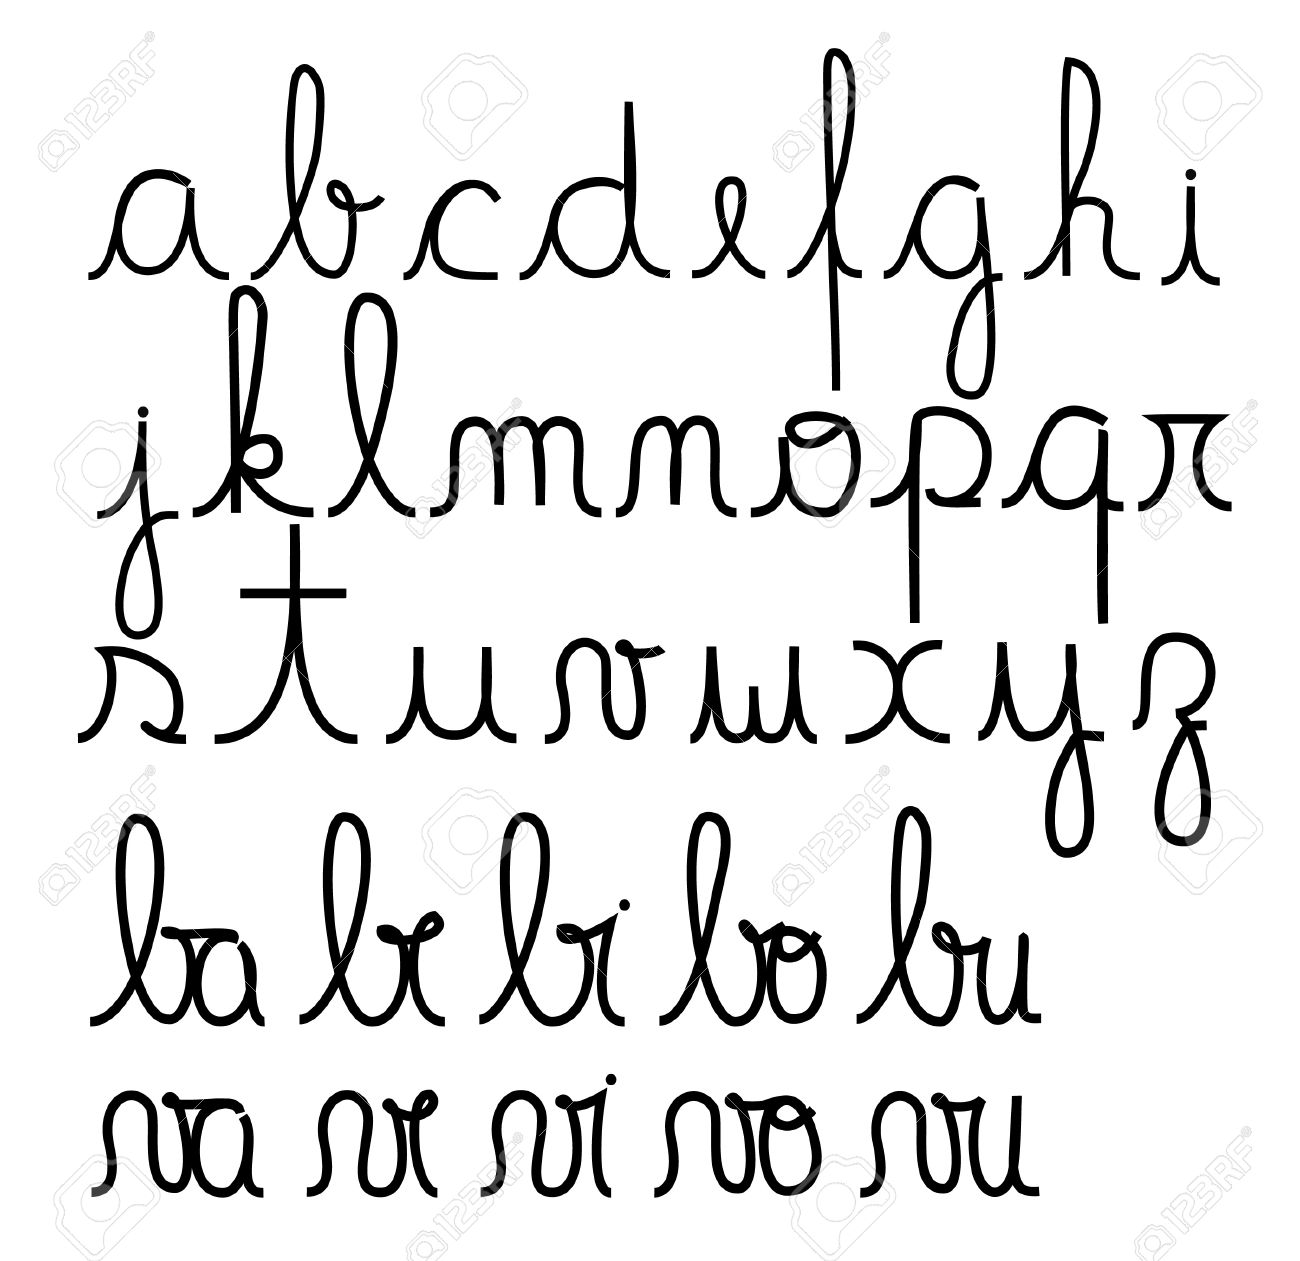 Cursive Alphabet Royalty Free Cliparts, Vectors, And Stock ...